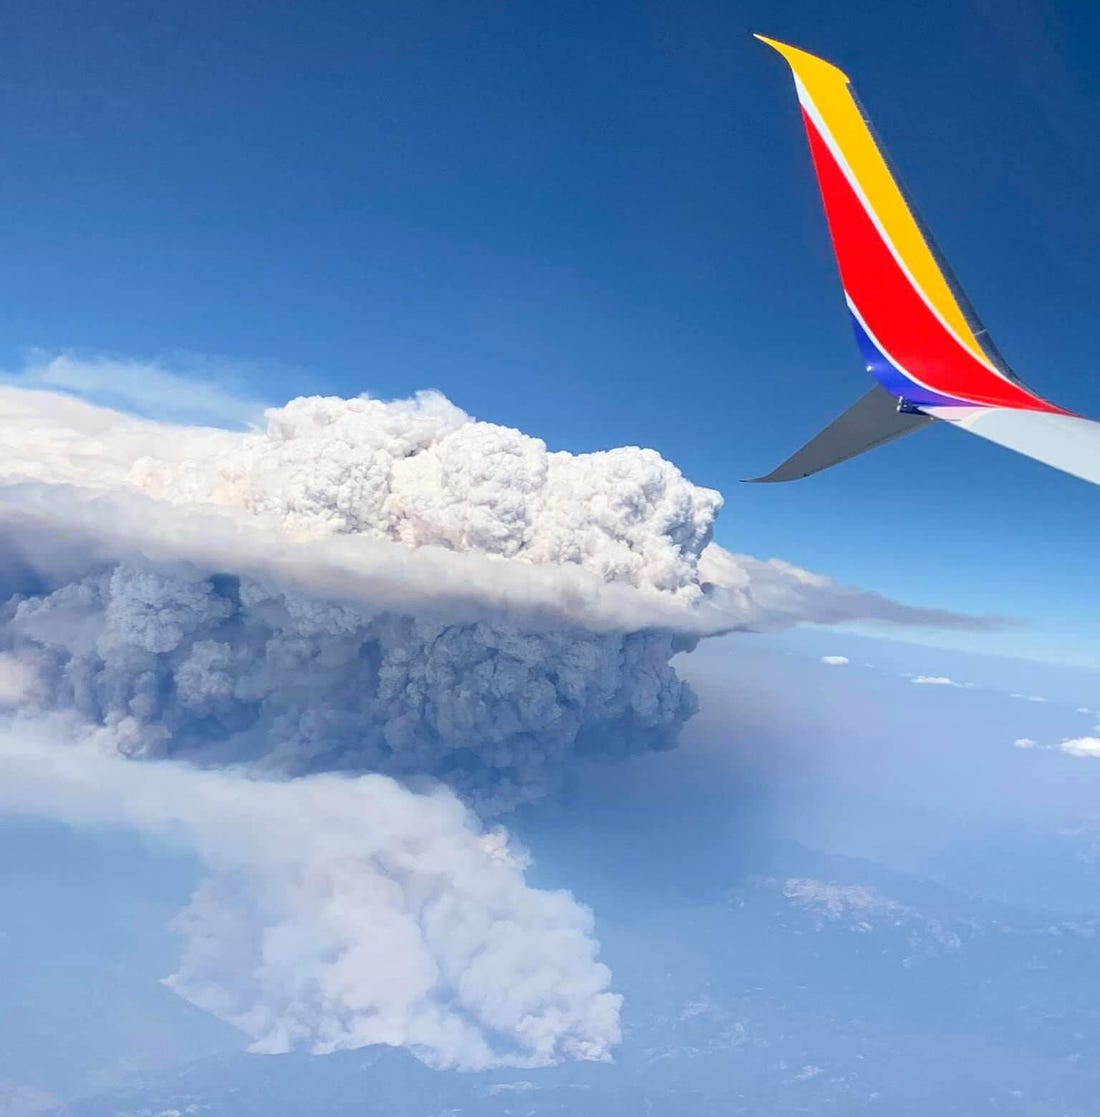 Picture of a pyrocumulonimbus cloud over California wildfires in 2020.